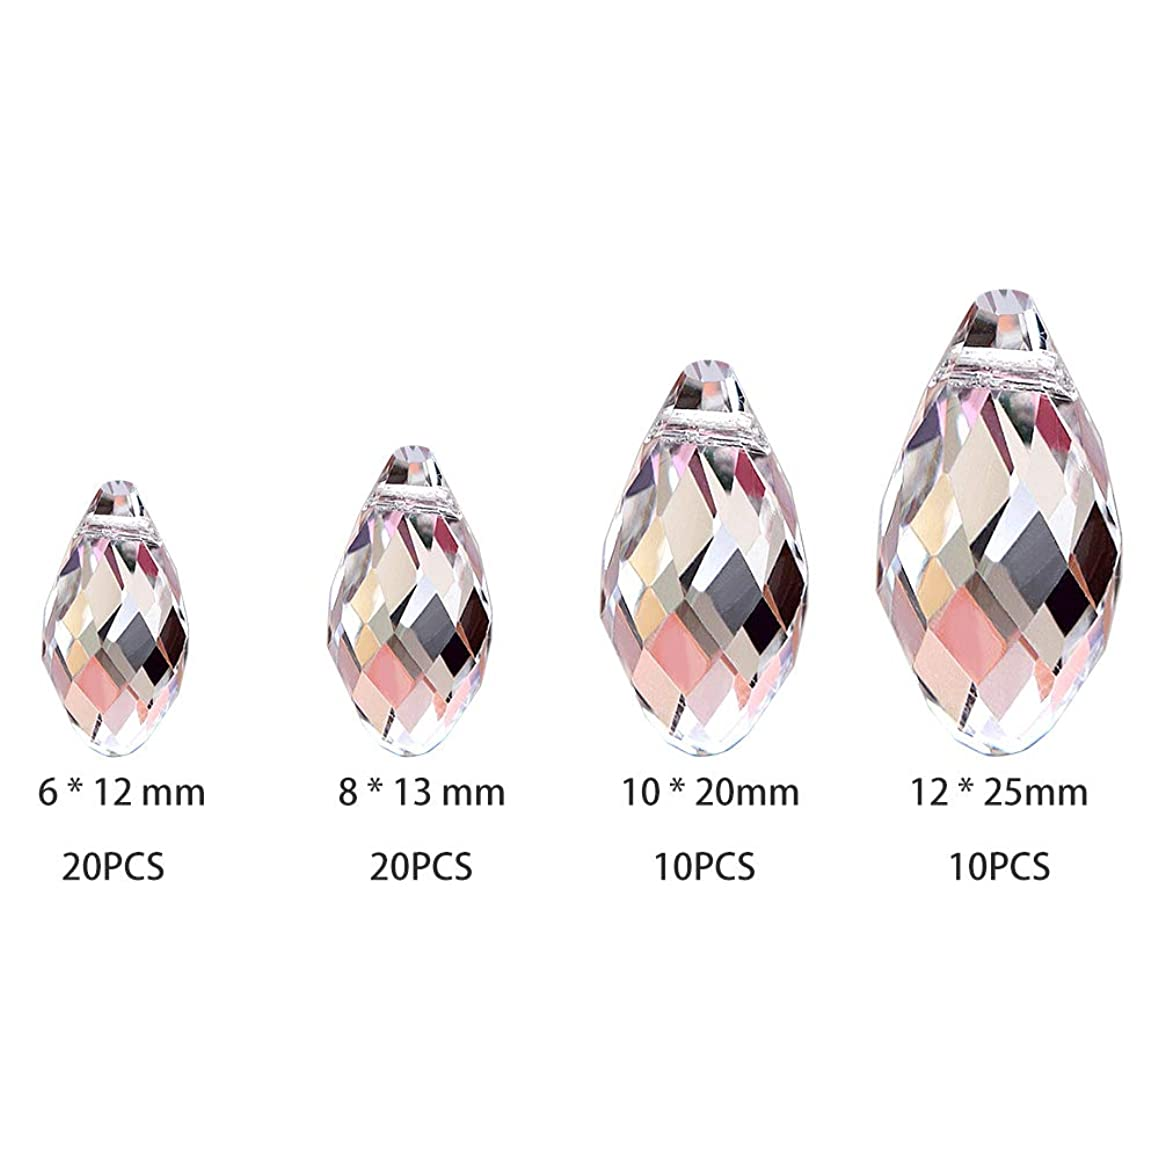 SunAngel Clear Teardrop Glass Beads for Jewelry Crystal Glass Pendants Suncatchers Chandelier Prism Parts Beads for Decoration Party Christmas Wedding(60PCS)